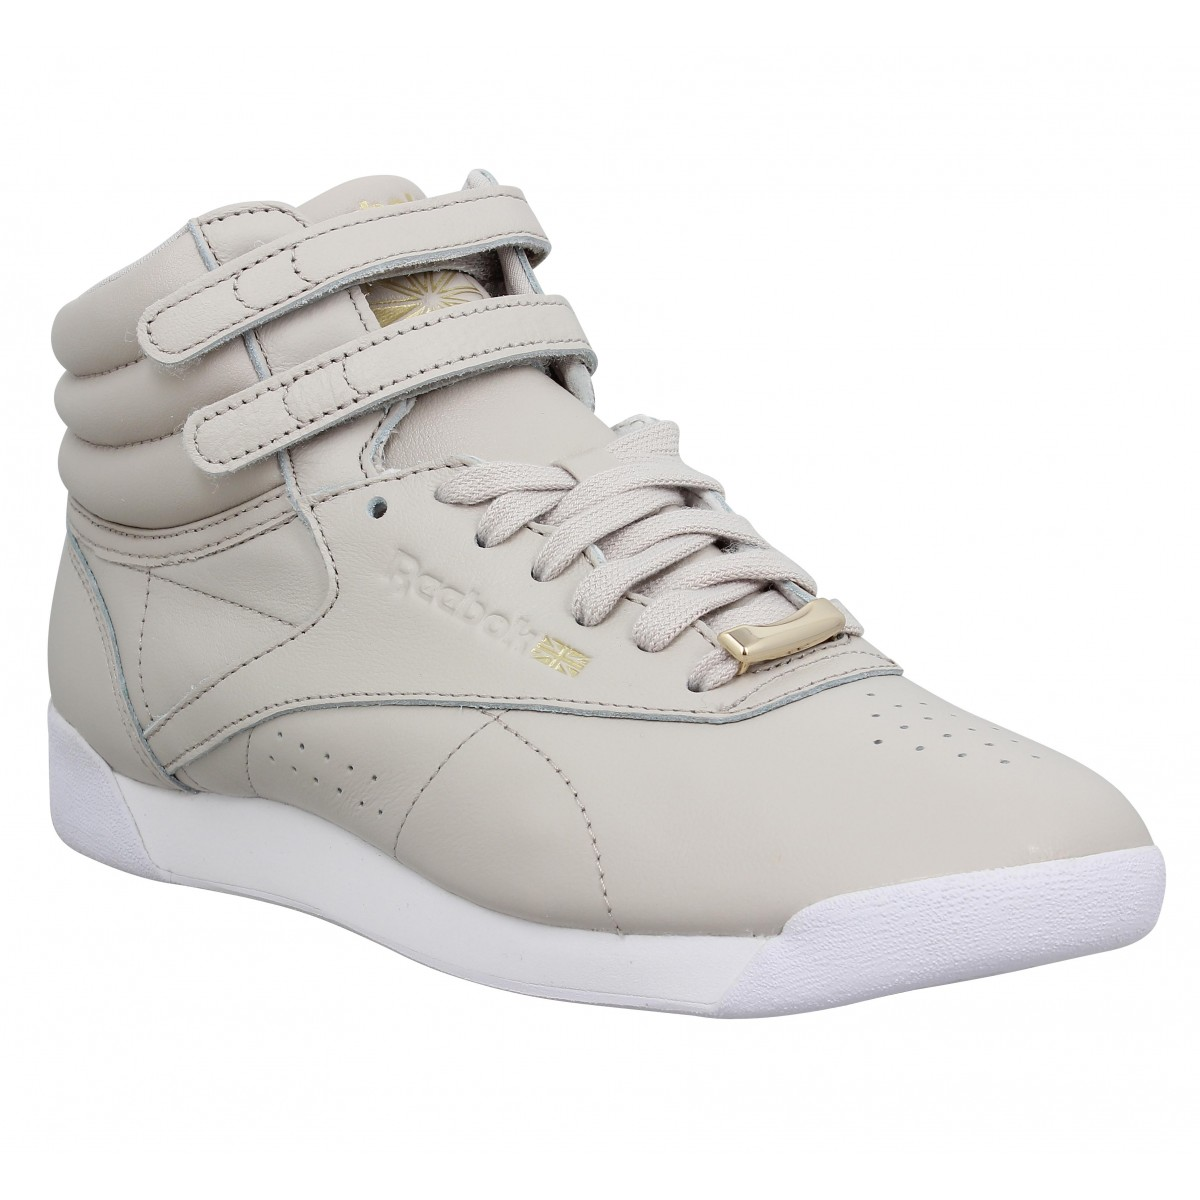 soldes reebok freestyle hi cuir femme sand femme fanny chaussures. Black Bedroom Furniture Sets. Home Design Ideas